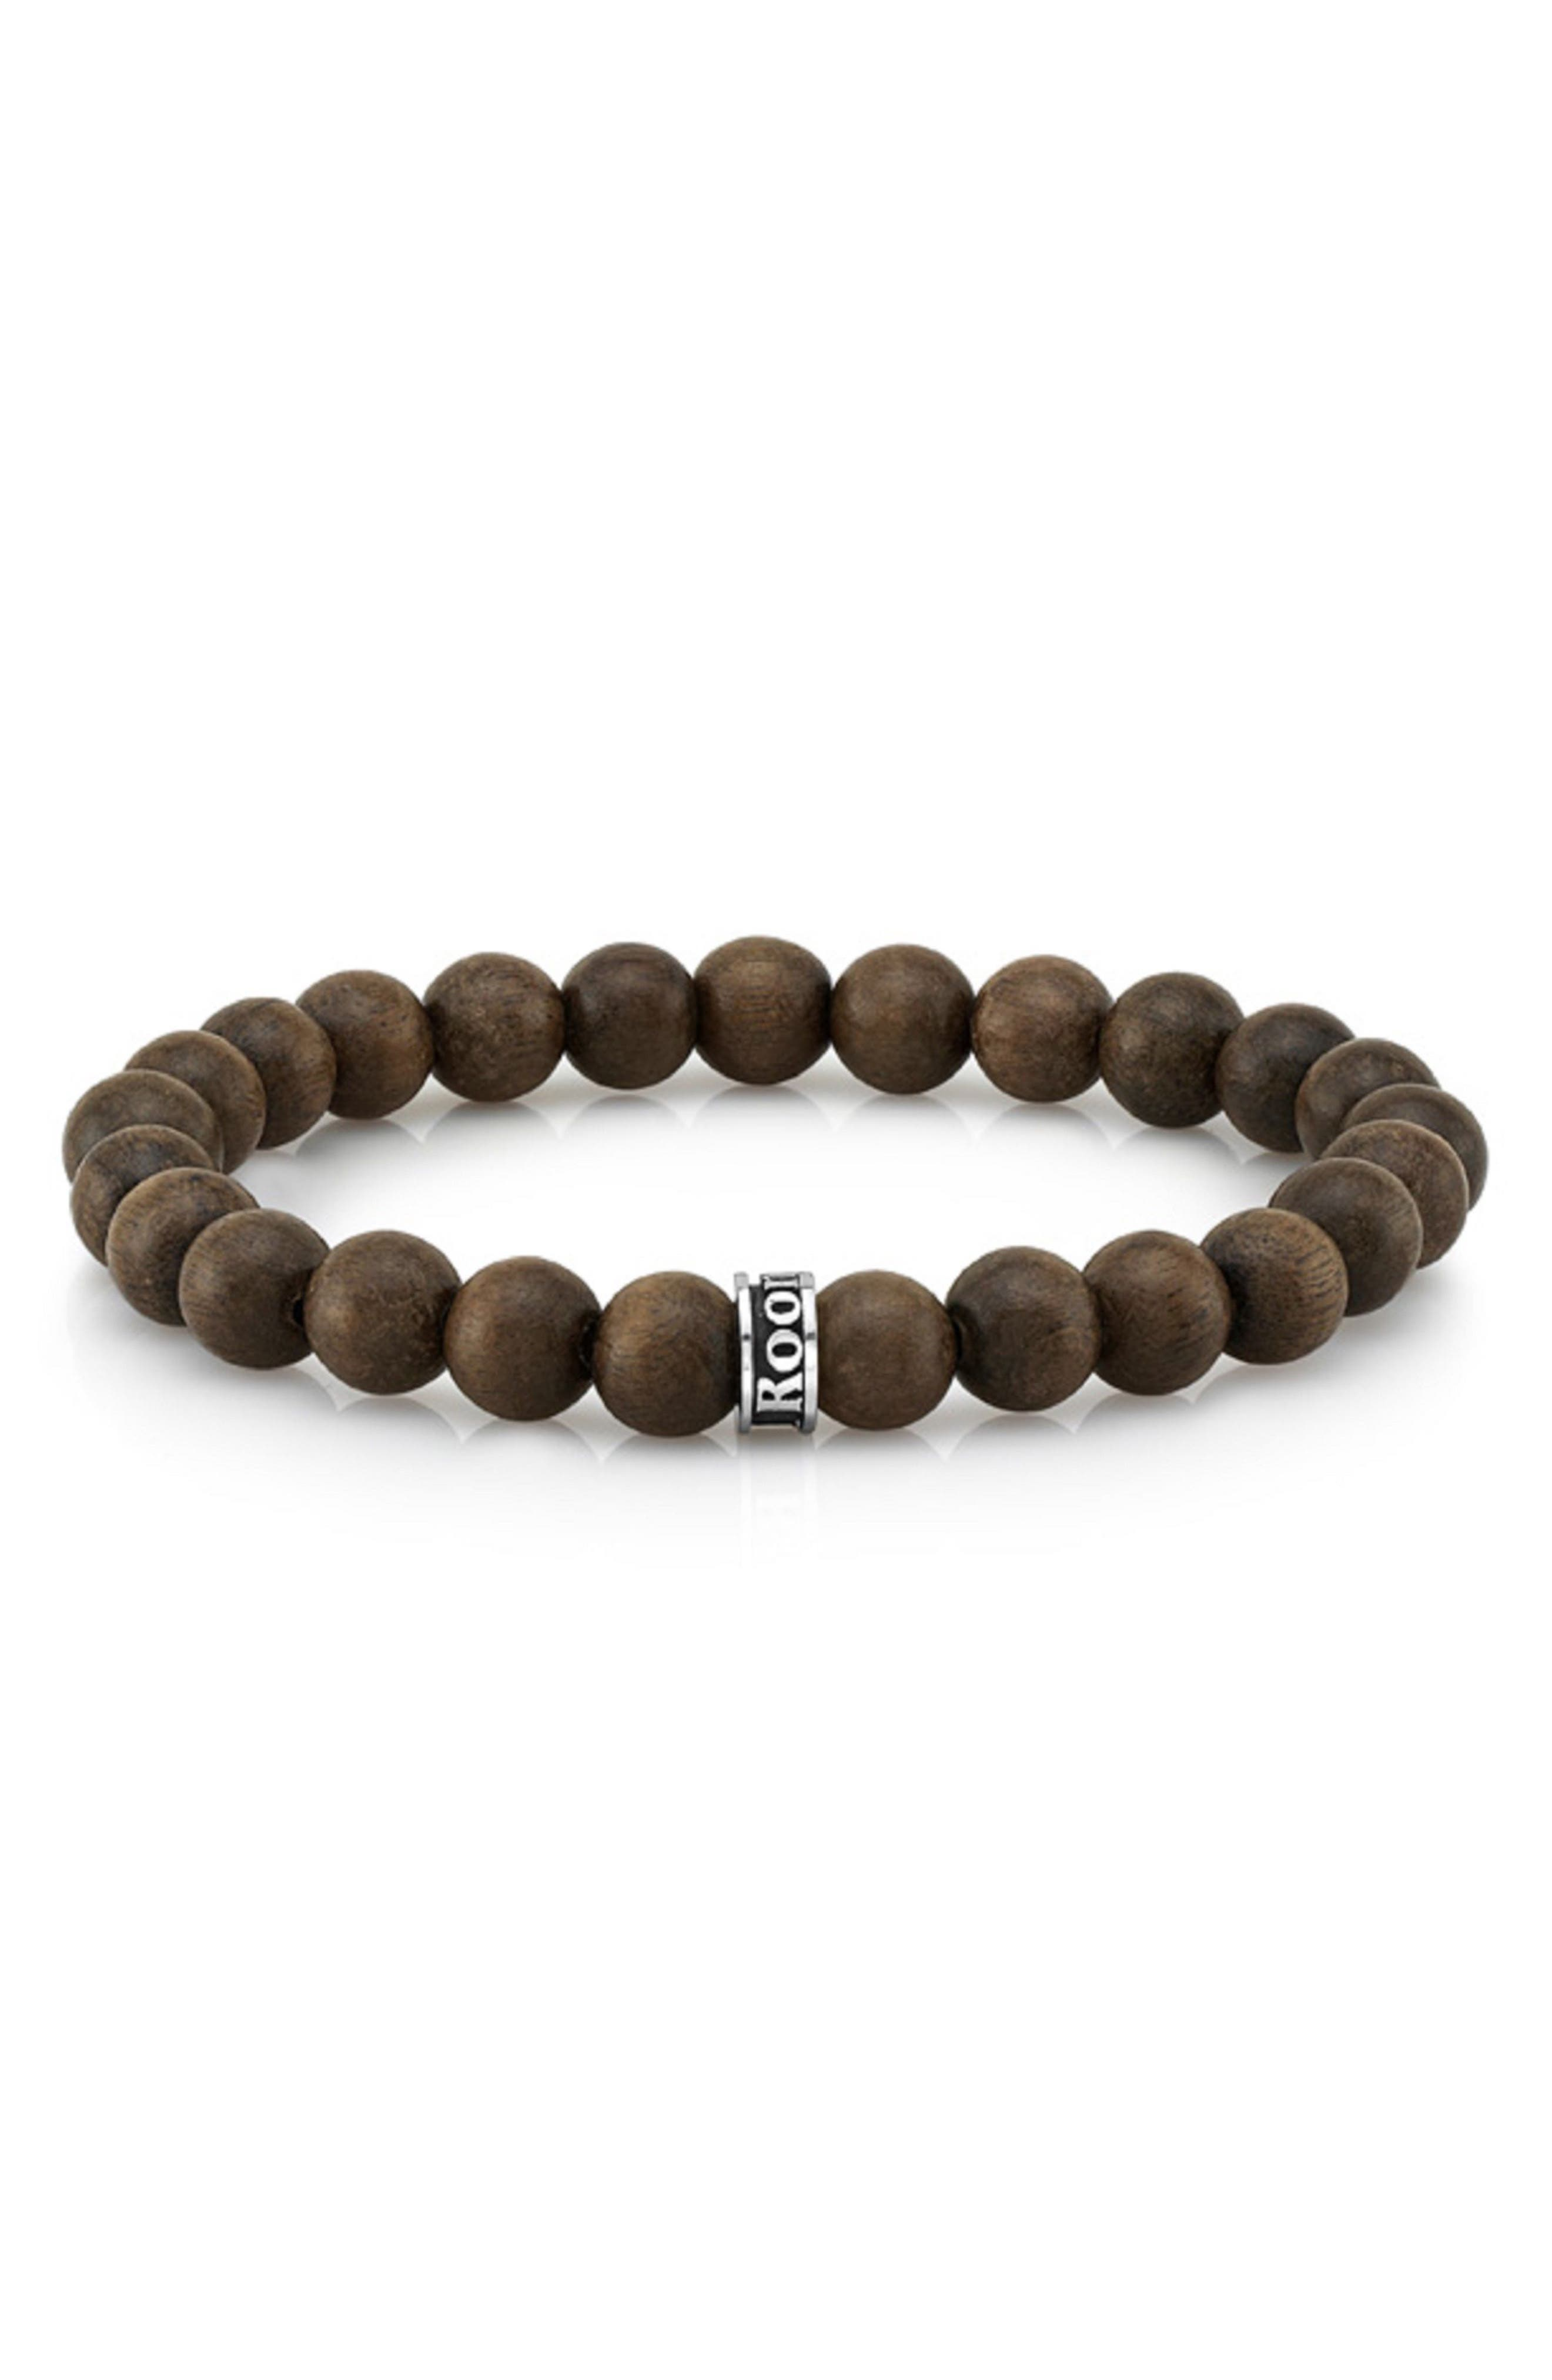 ROOM101 Room 101 Wood Bead Bracelet